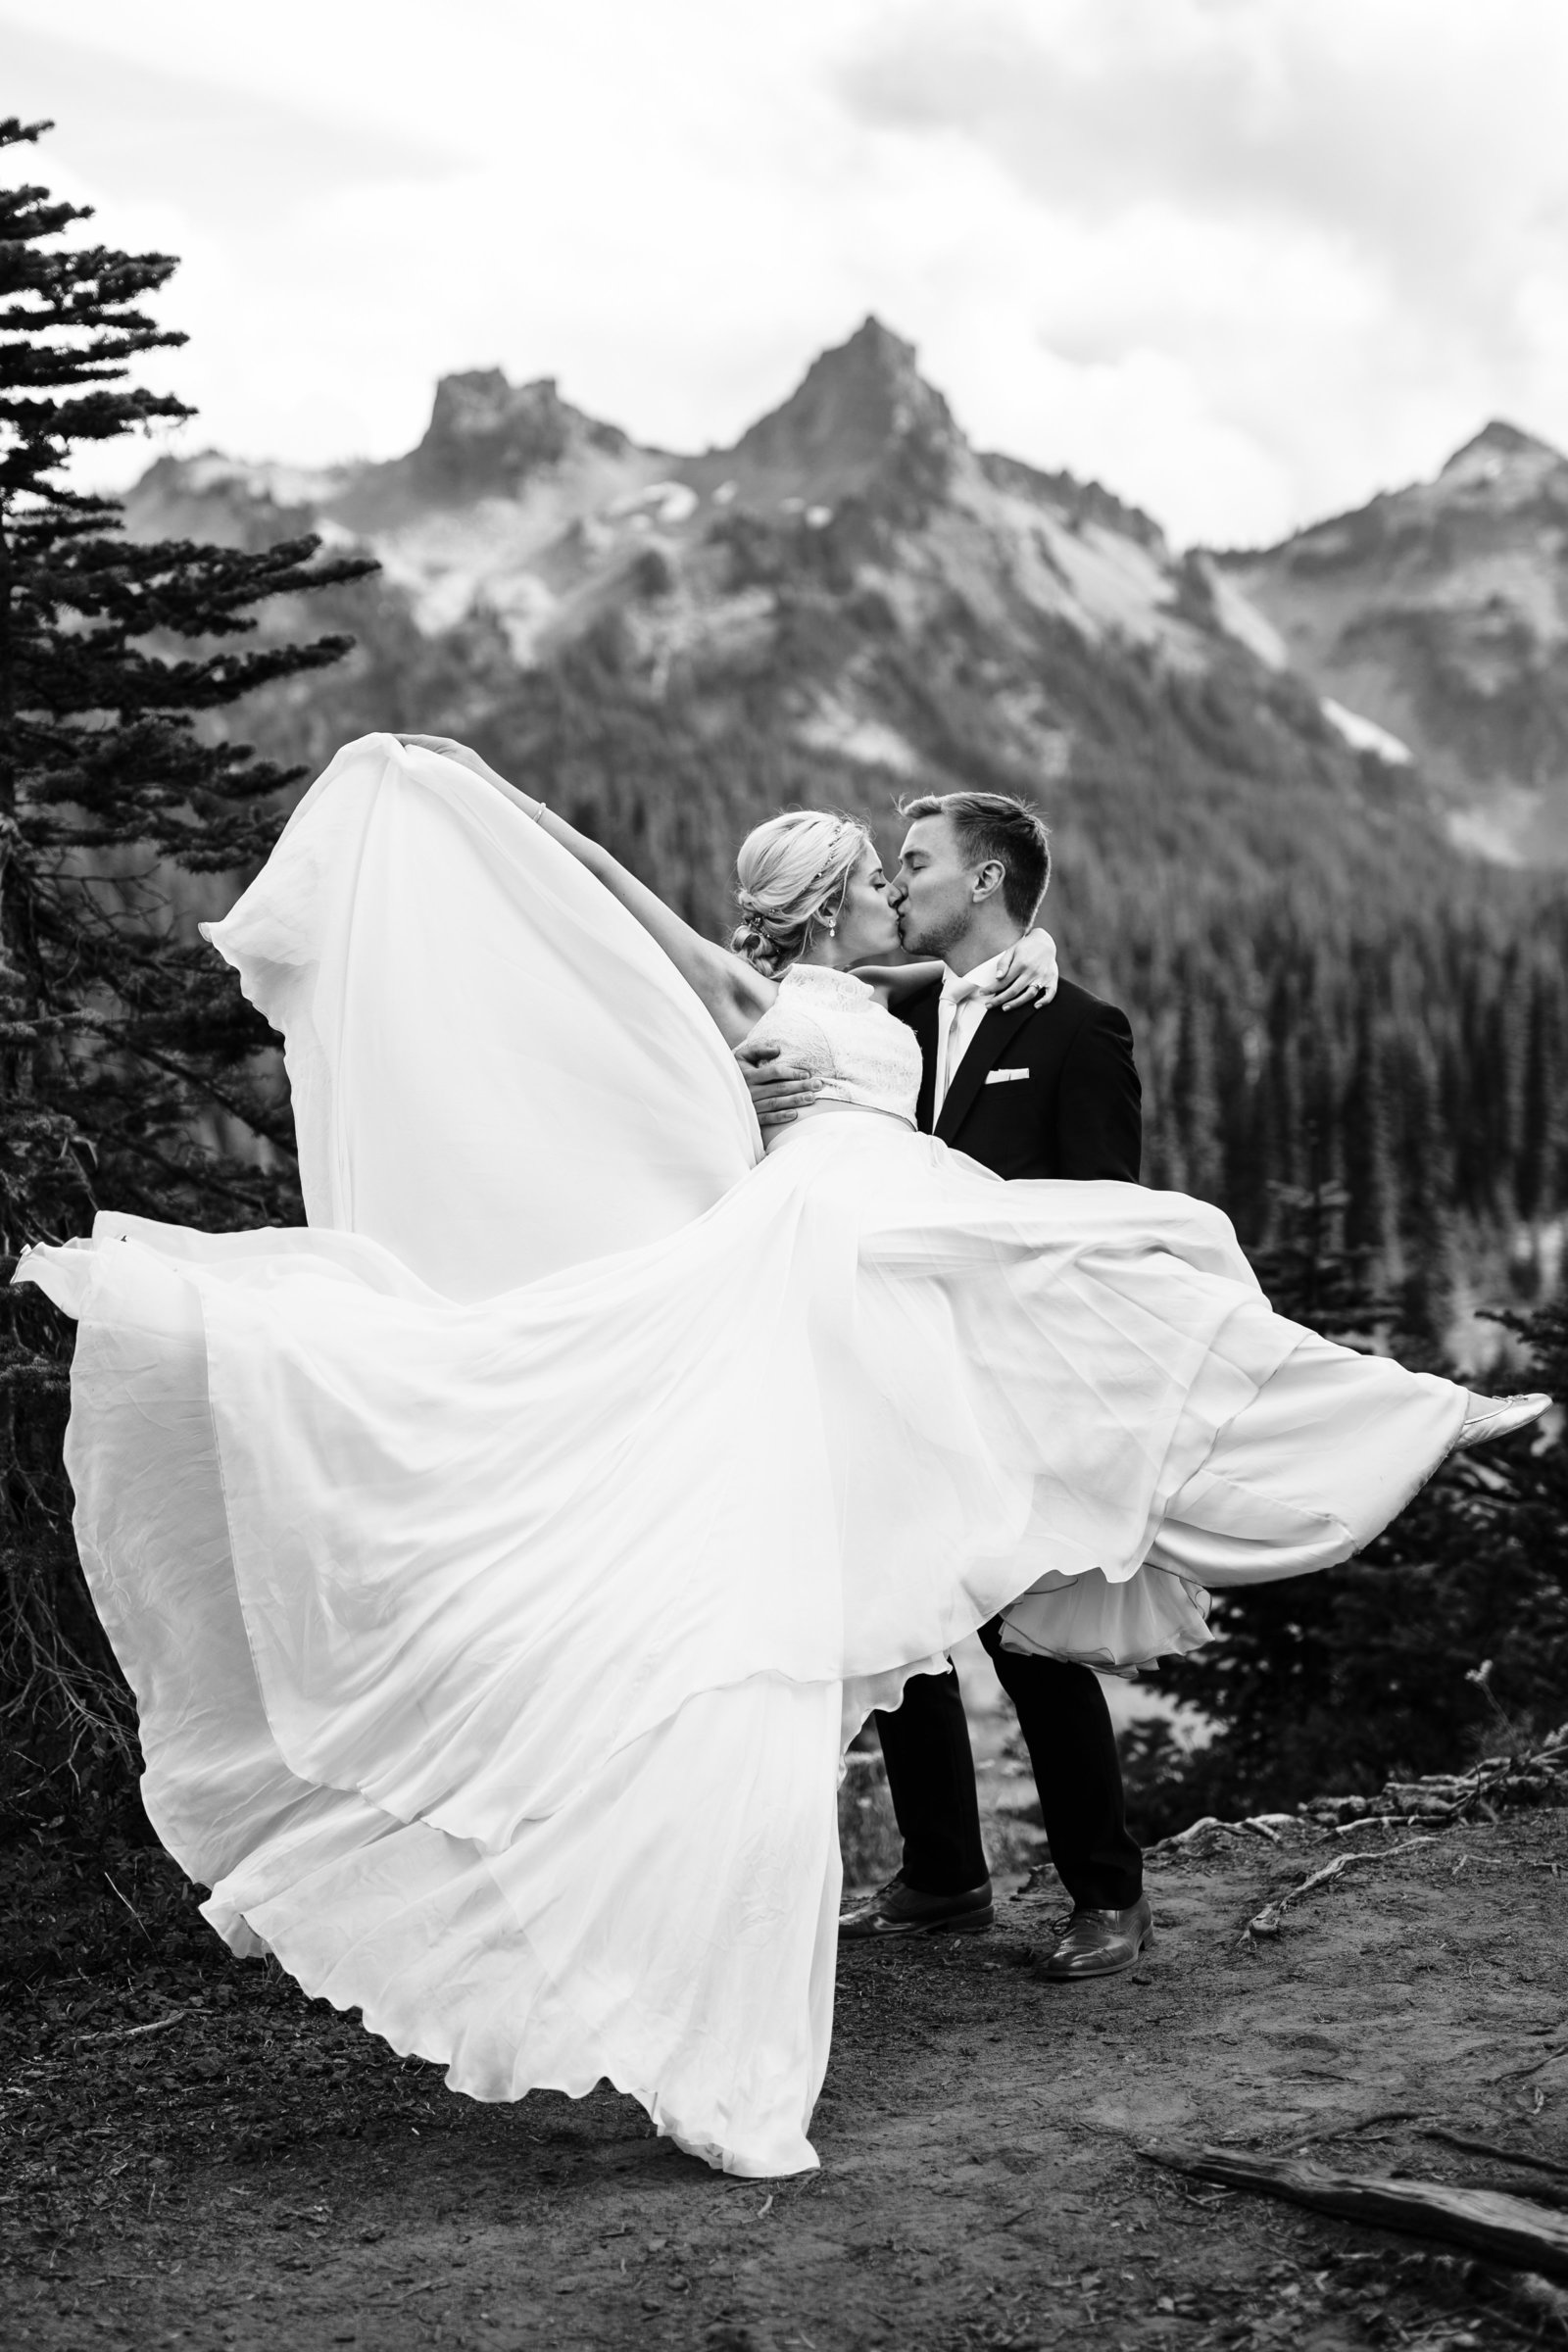 mount-rainier-national-park-elopement-cameron-zegers-photographer-seattle-176